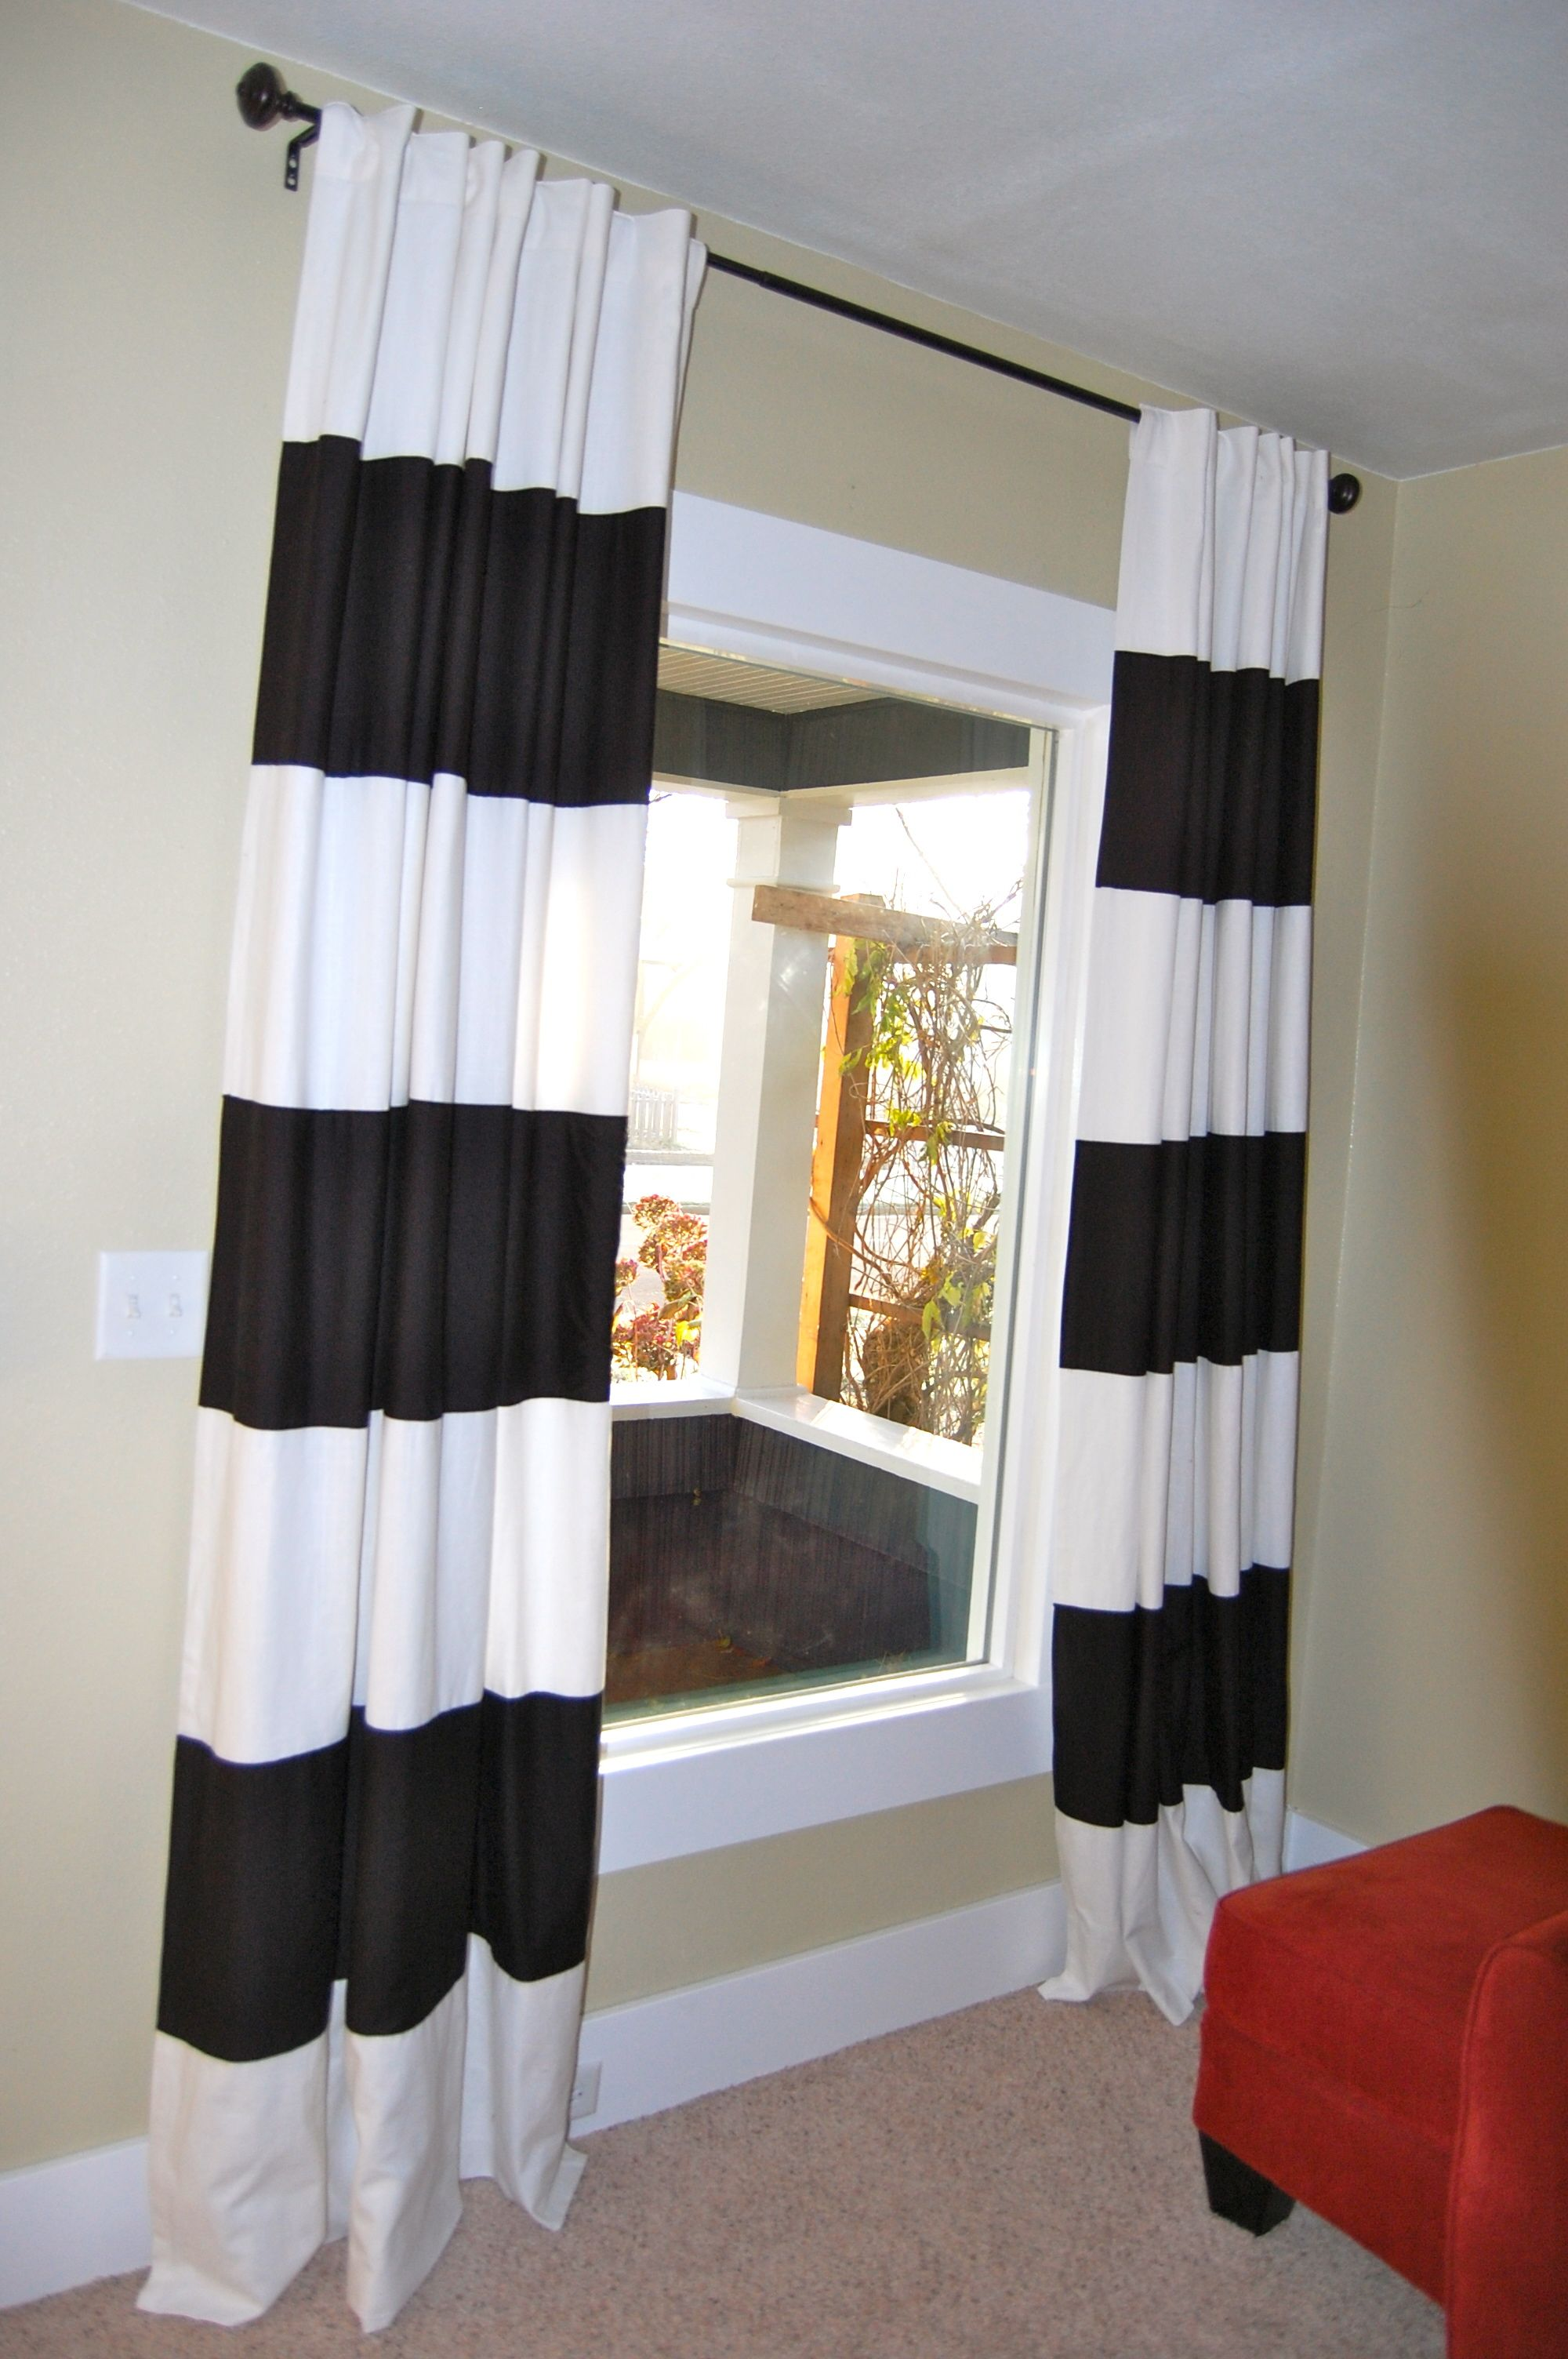 diy black white striped curtains decor ideas striped curtains rh pinterest com